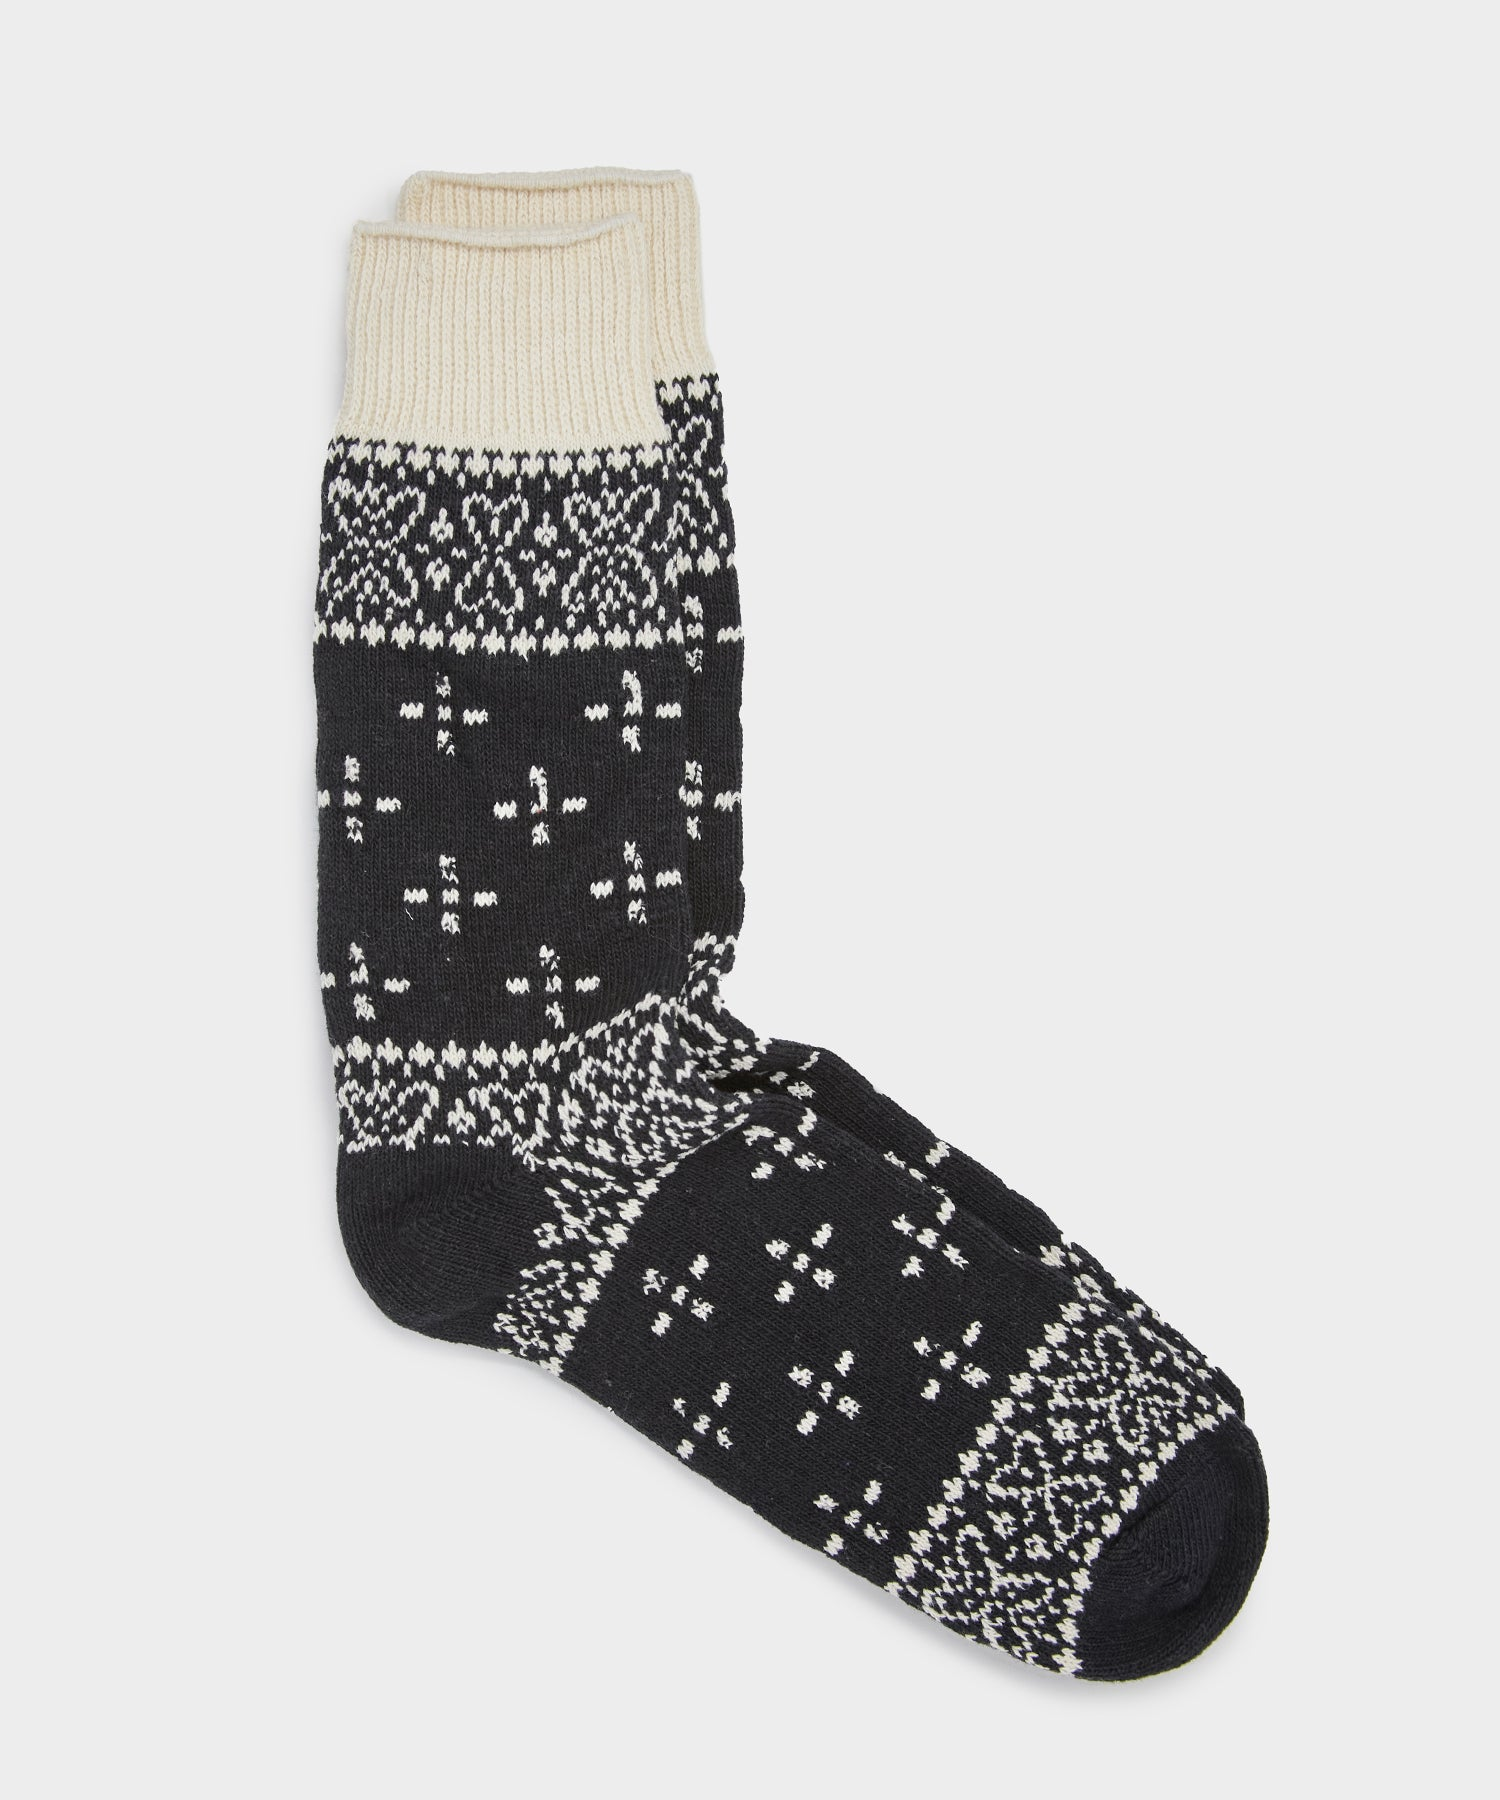 RoToTo Bandana Pattern Crew Socks in Black